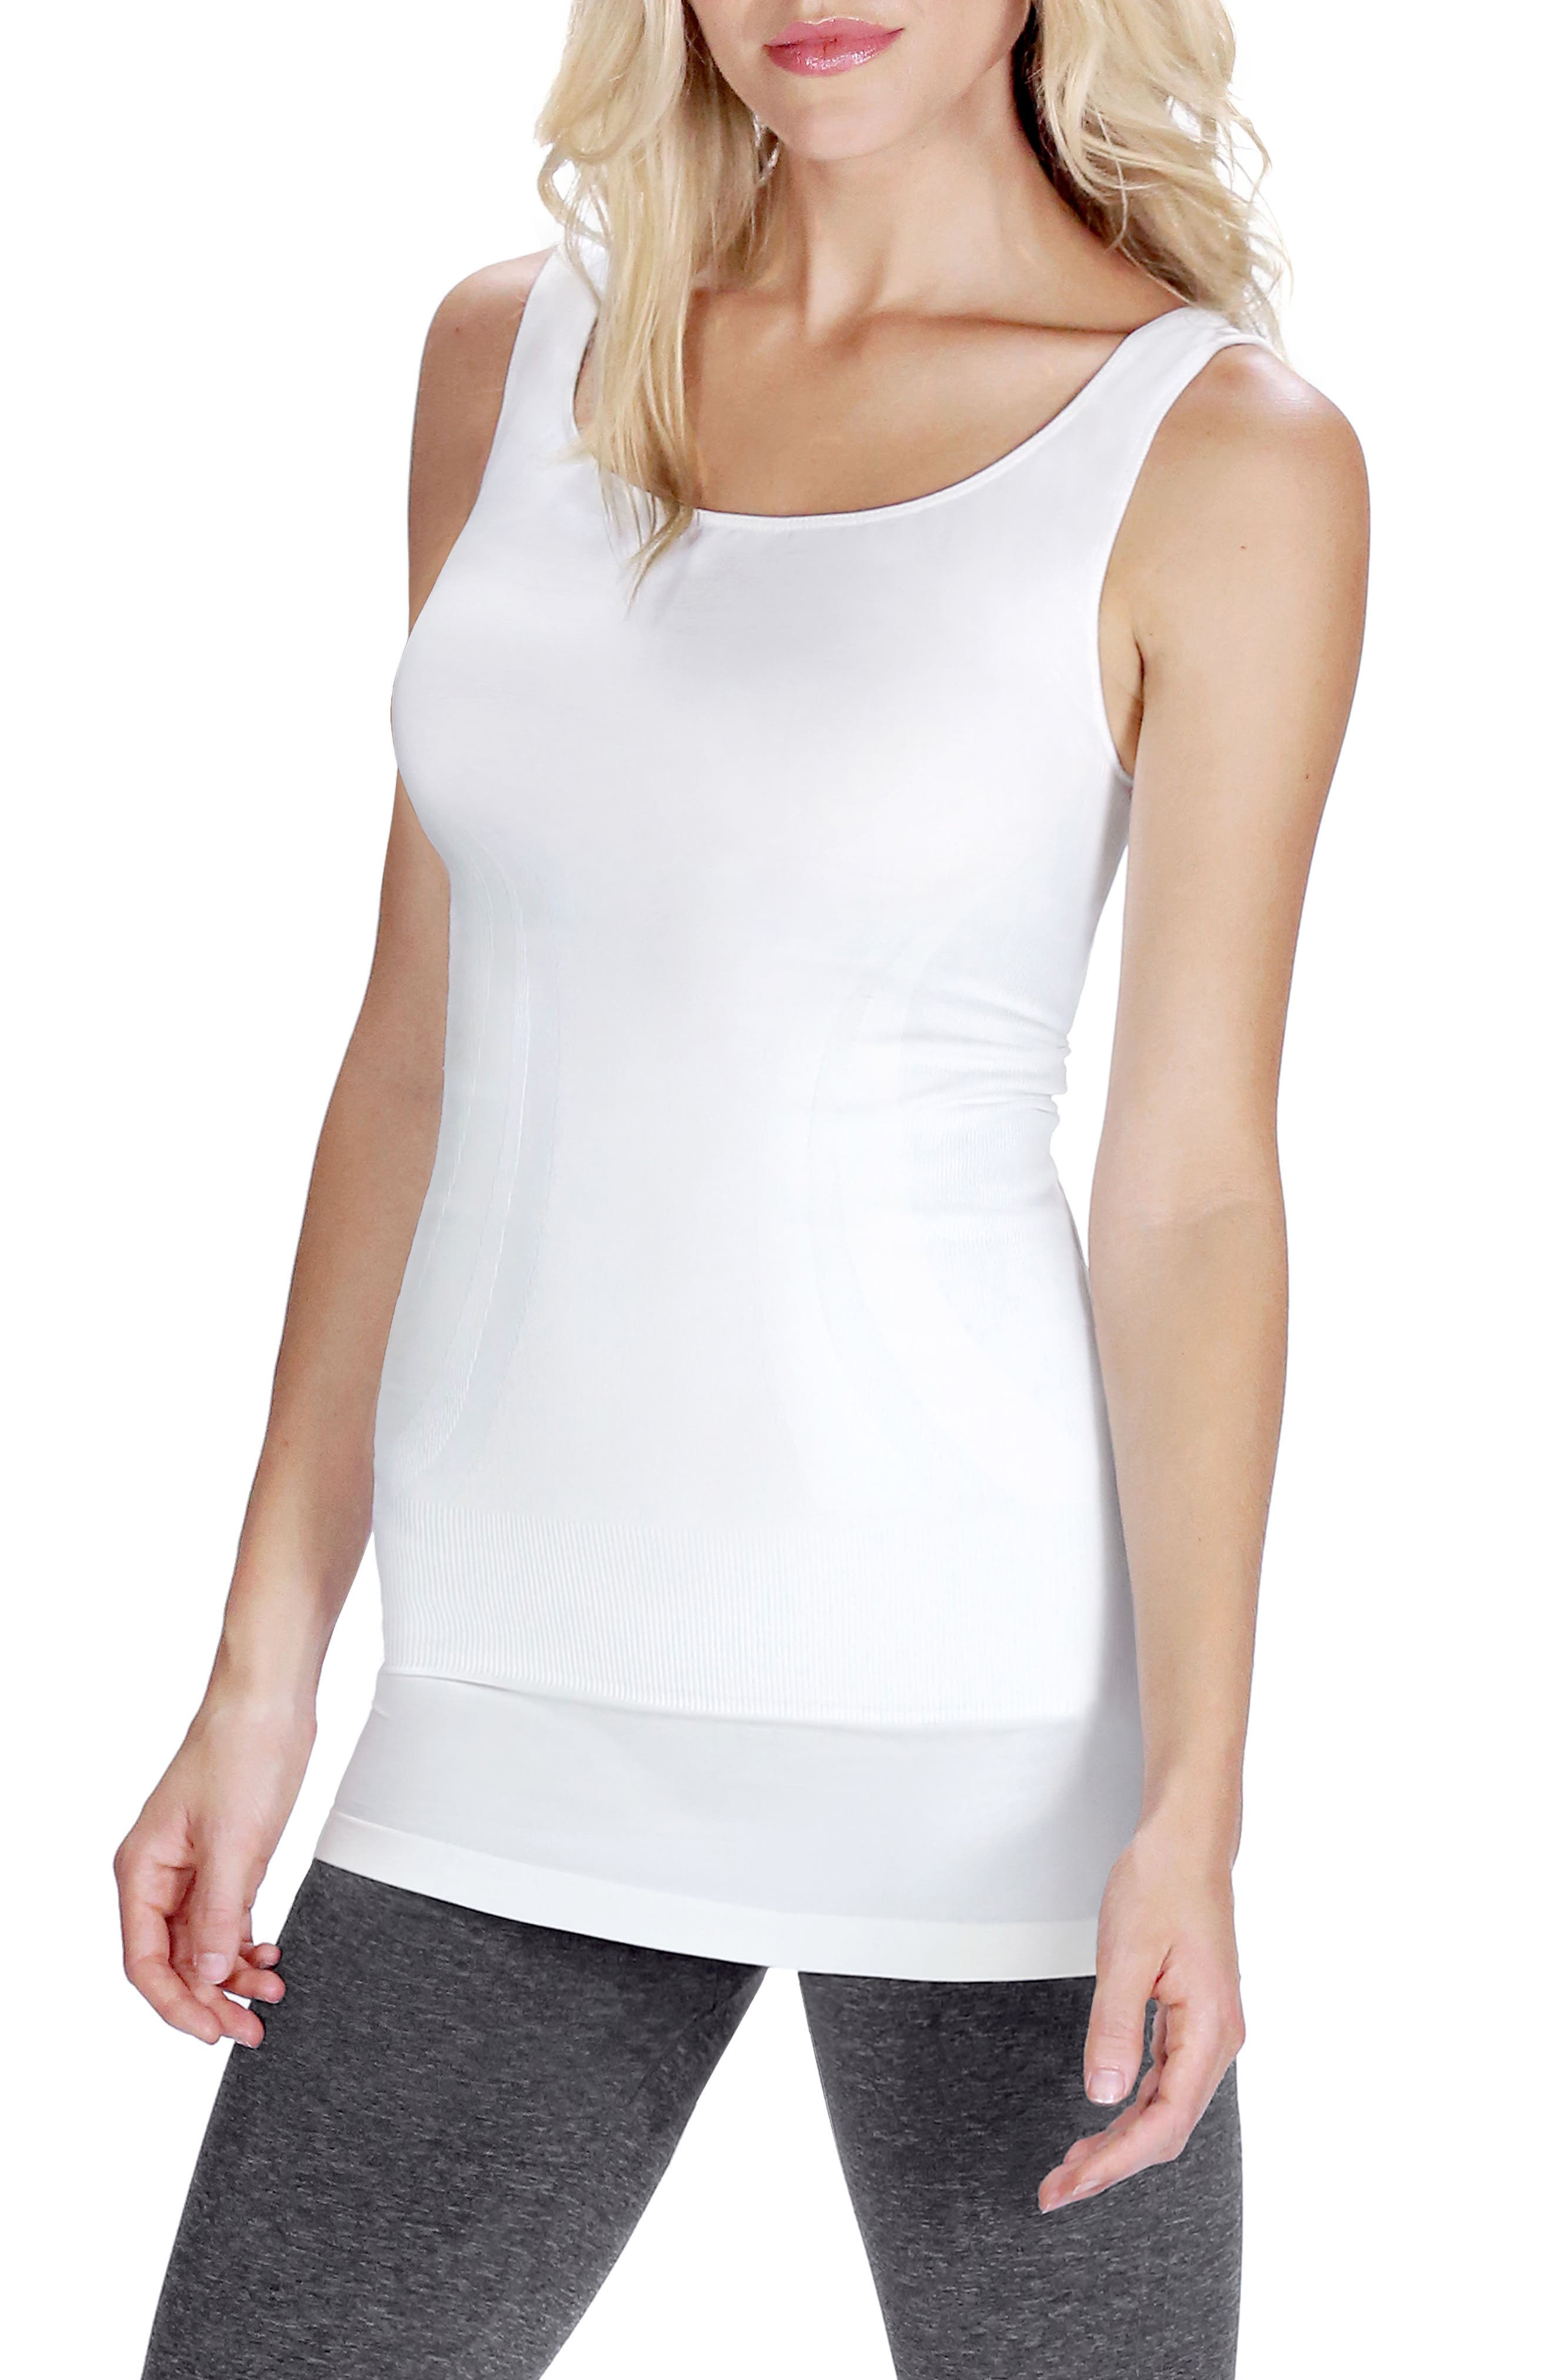 Everyday<sup>™</sup> Pull-Down Postpartum + Nursing Support Tank Top,                             Main thumbnail 1, color,                             Winter White